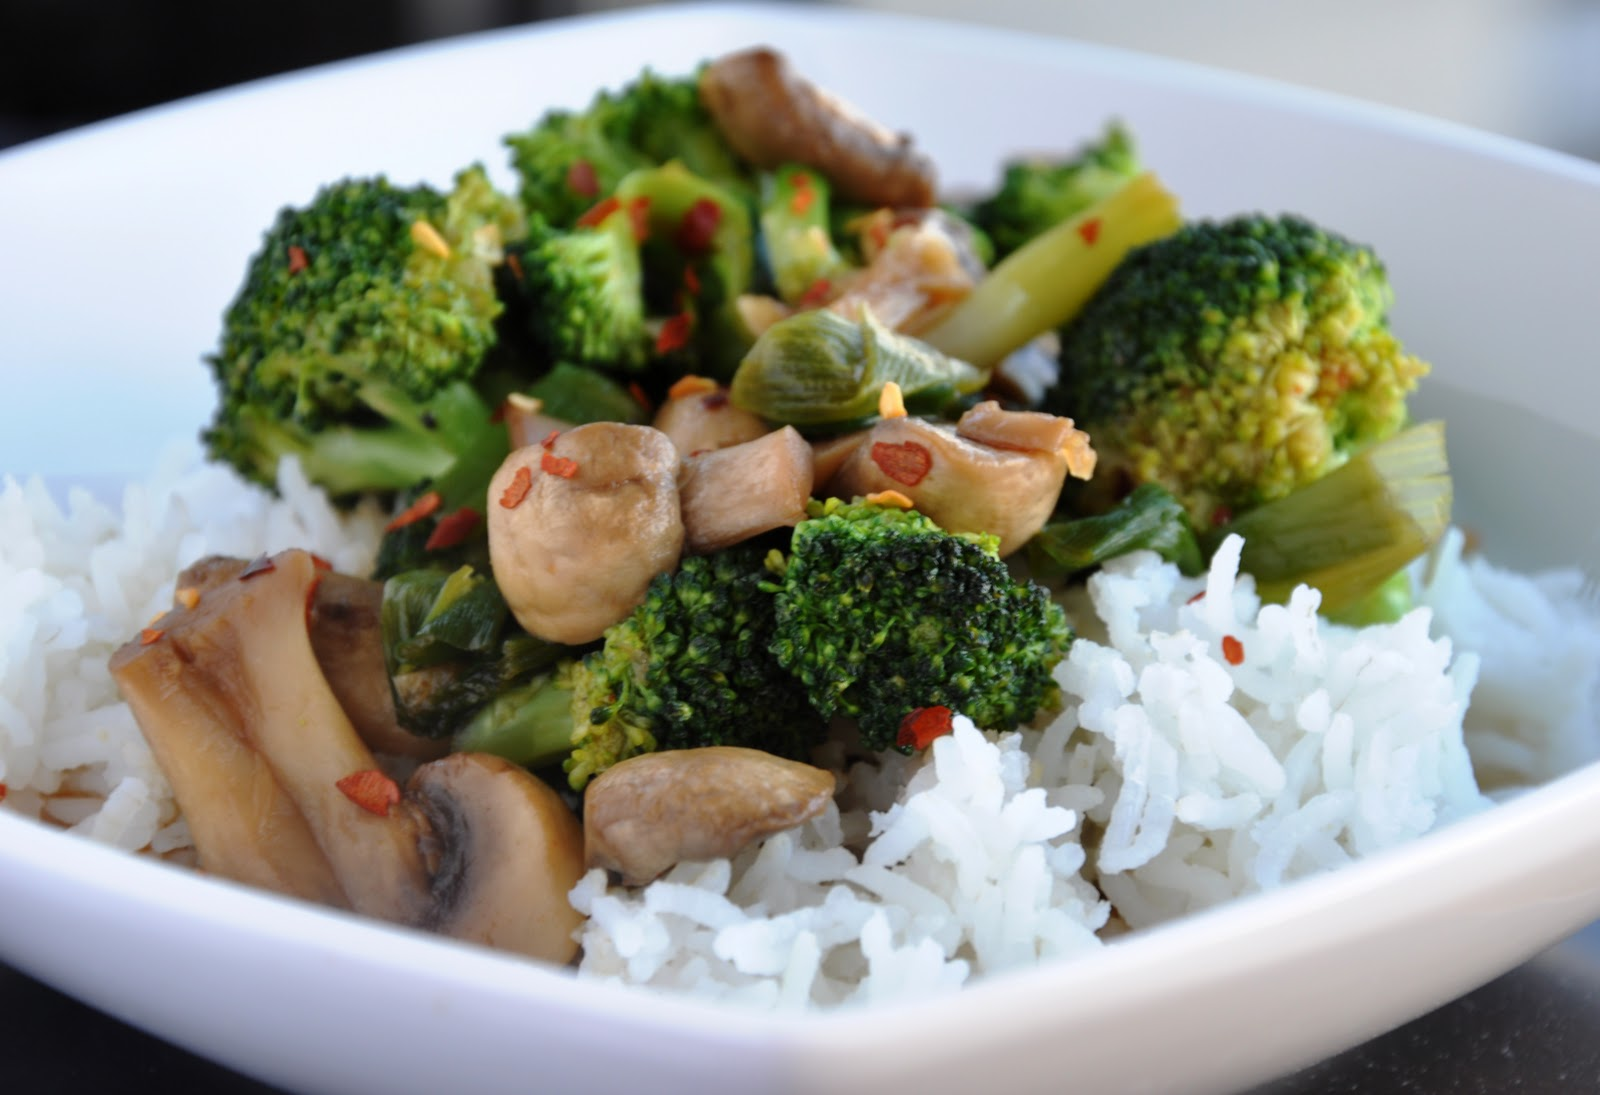 Quick healthy broccoli and mushroom stir fry honey whats cooking who are watching their weight or for those of you who do not have enough time to cook this super easy stir fry is not only delicious but healthy too ccuart Gallery